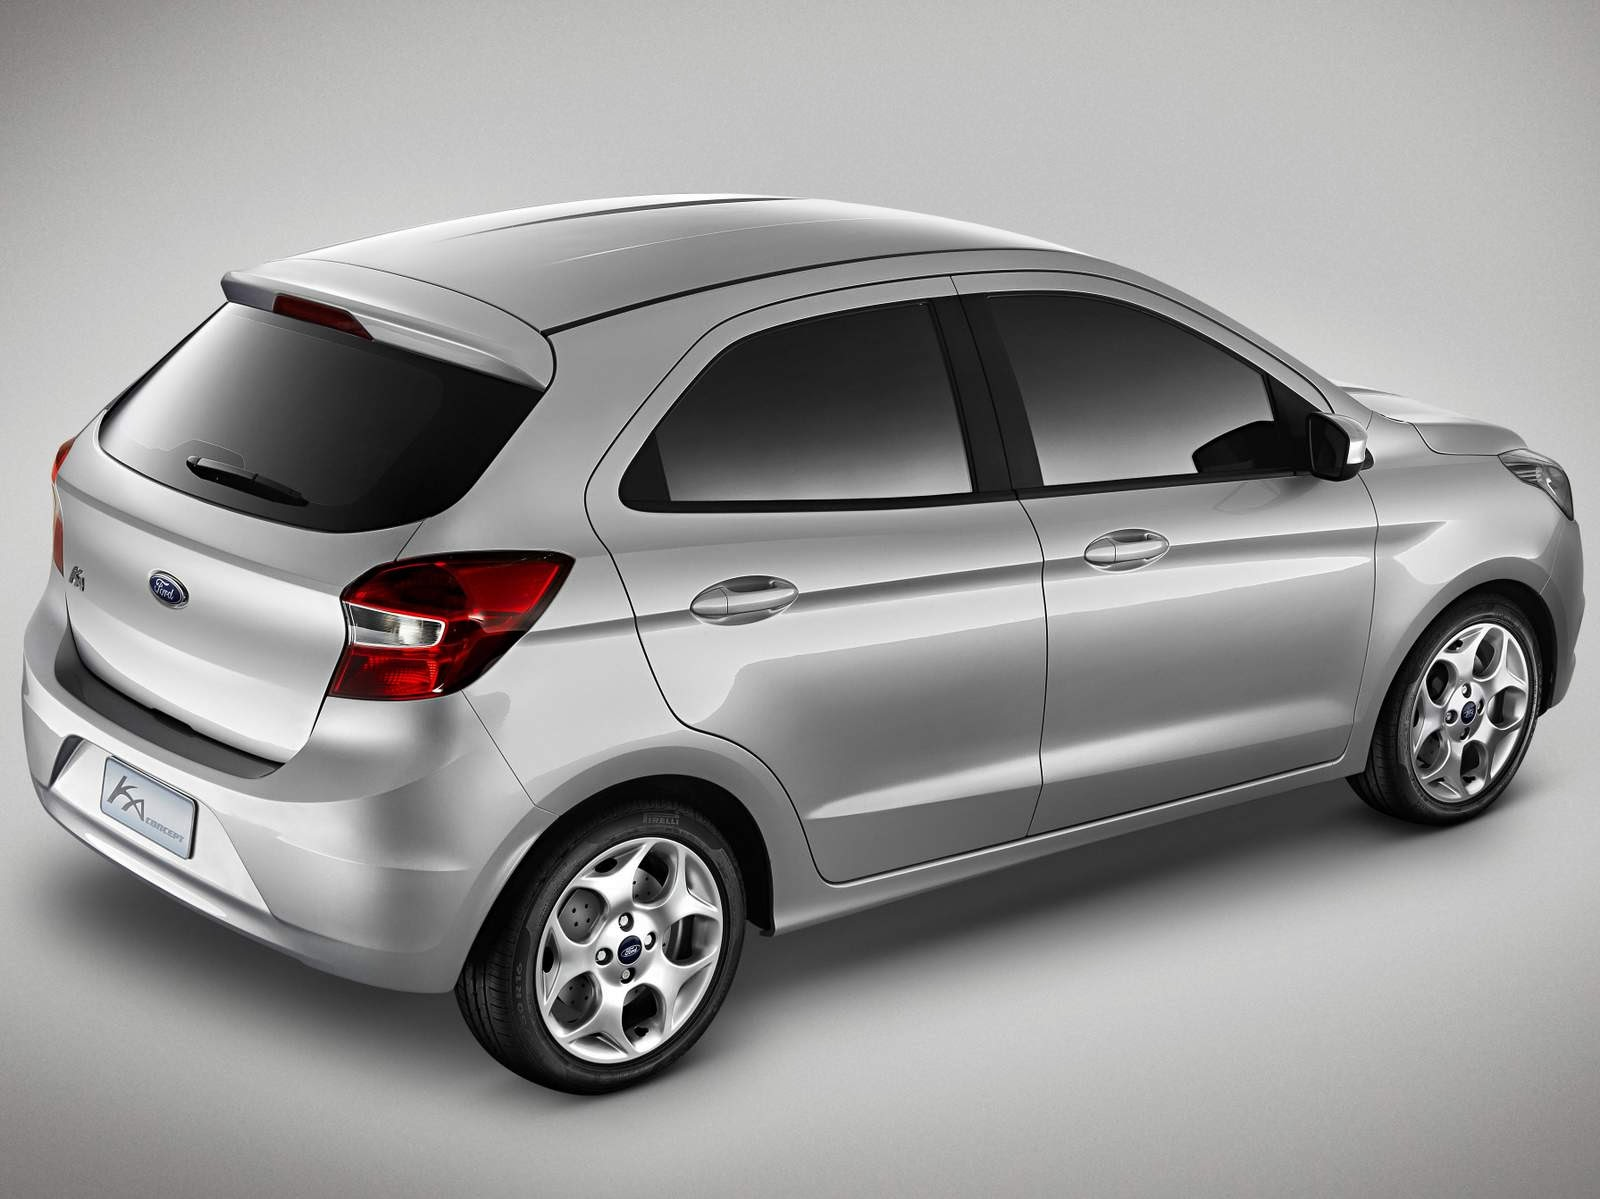 novo ford ka 2014 fotos e v deo de apresenta o car blog br. Black Bedroom Furniture Sets. Home Design Ideas